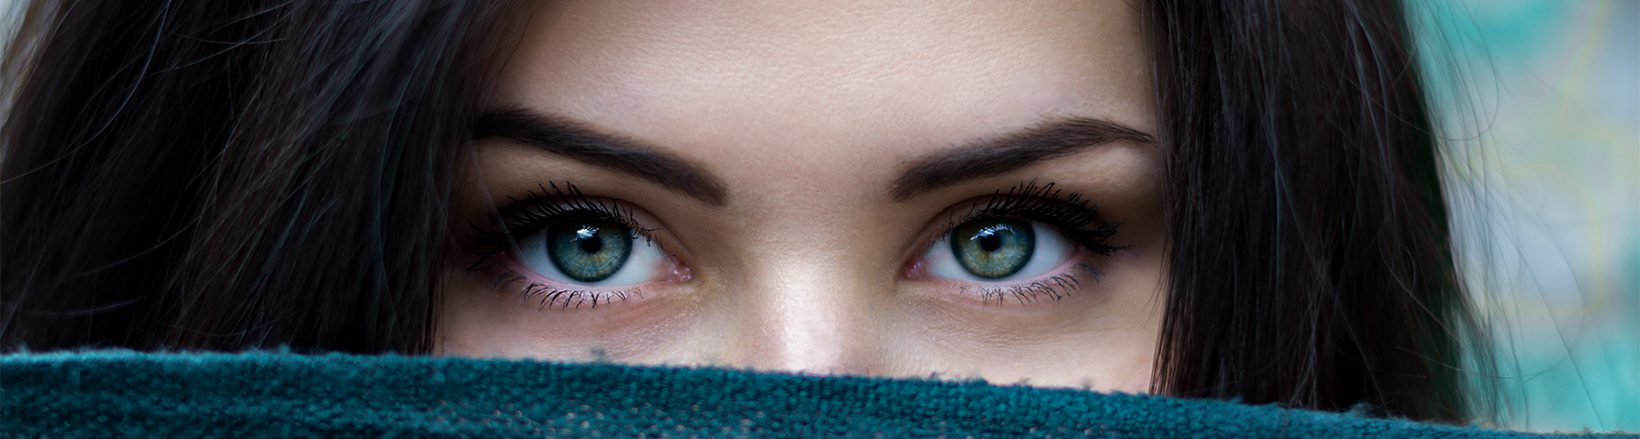 About the contact lenses offered at Golden Eye Optometry.